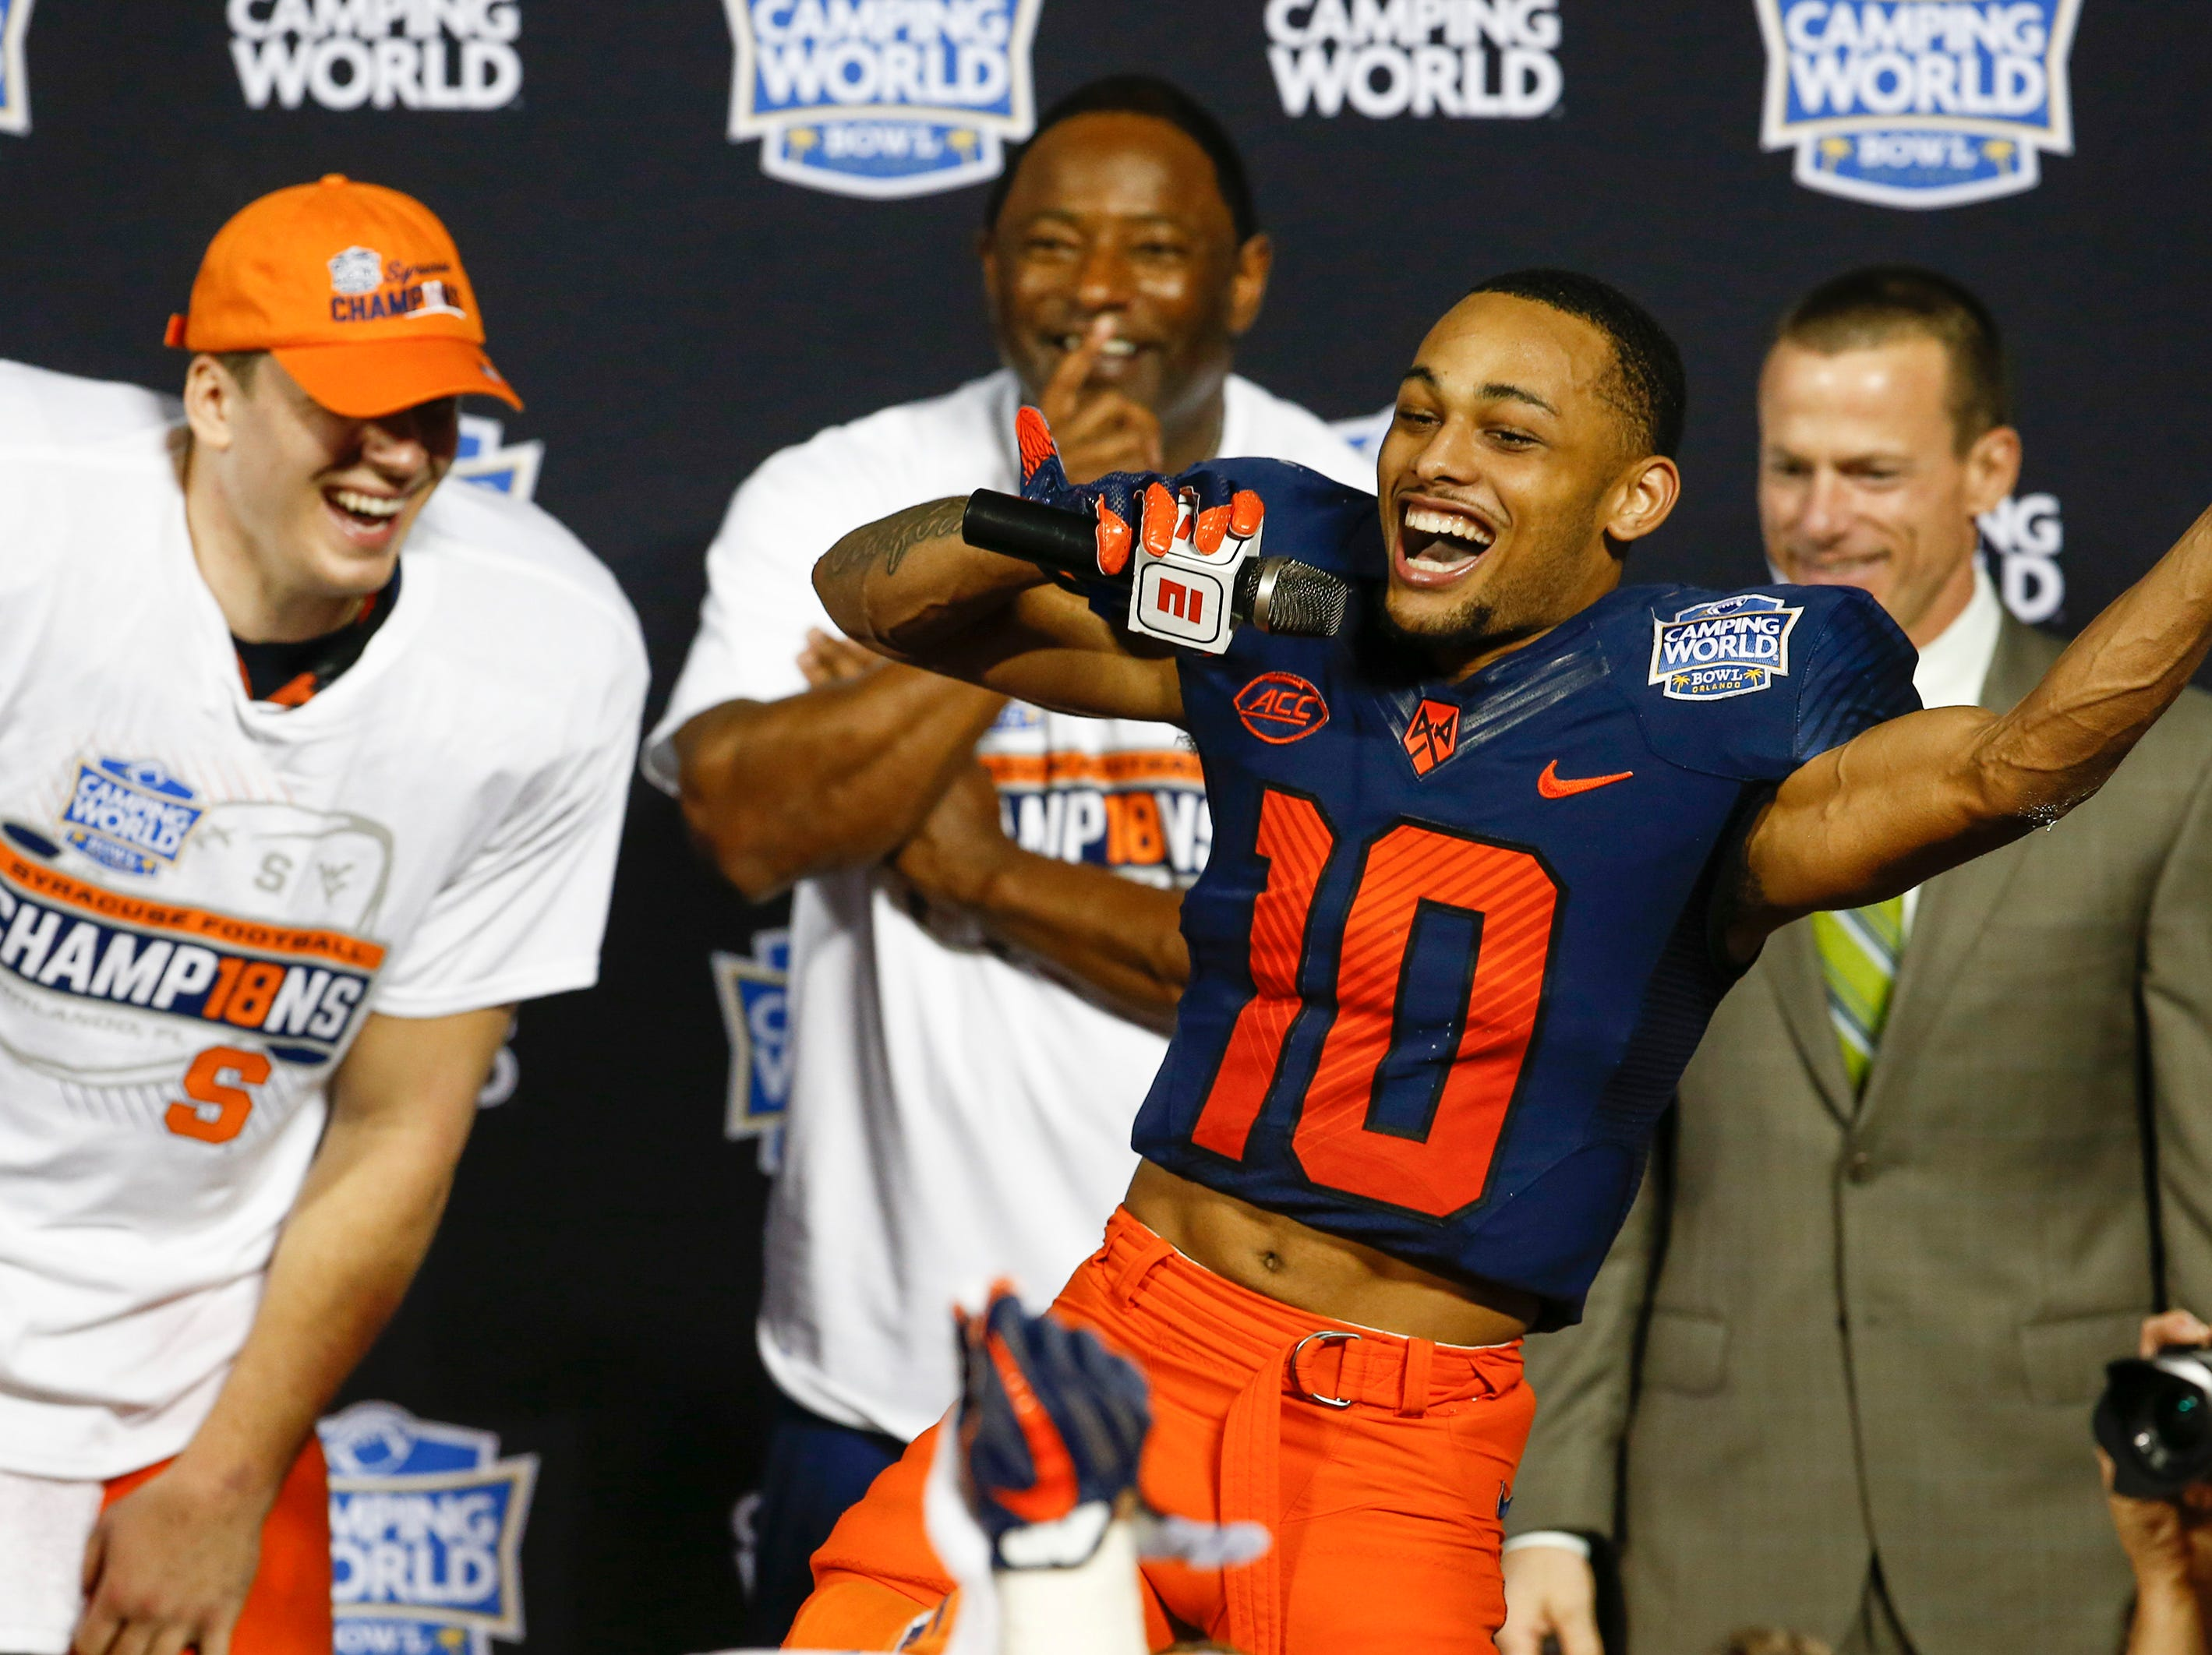 Syracuse Orange quarterback Eric Dungey (left) laughs as wide receiver Sean Riley (10) makes a speech after winning the Camping World Bowl vs. the West Virginia Mountaineers.